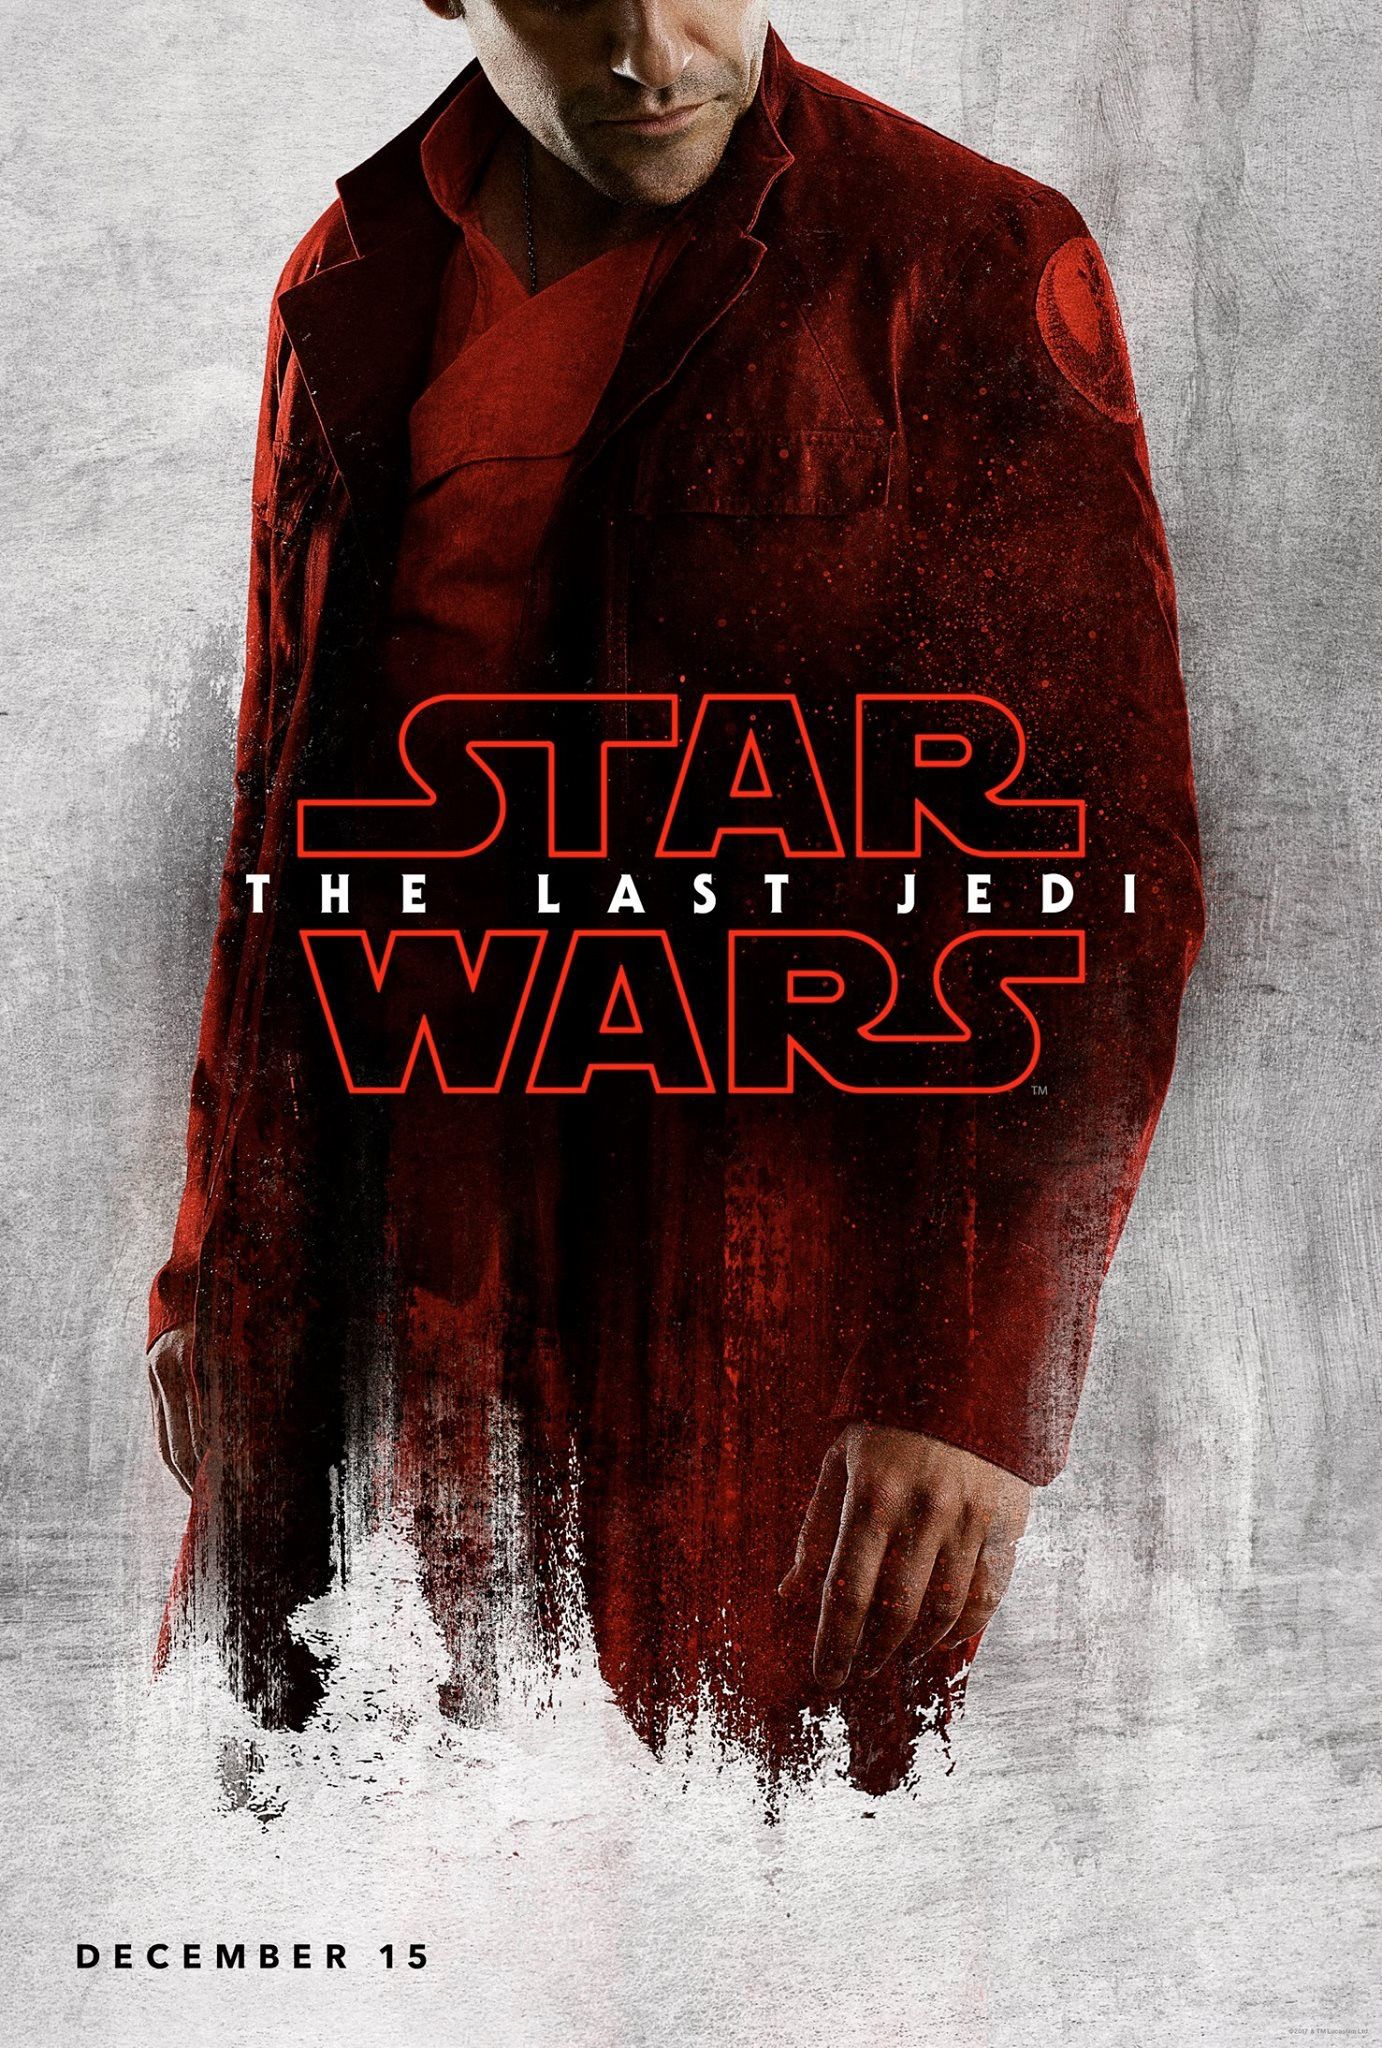 The Last Jedi Character poster #6